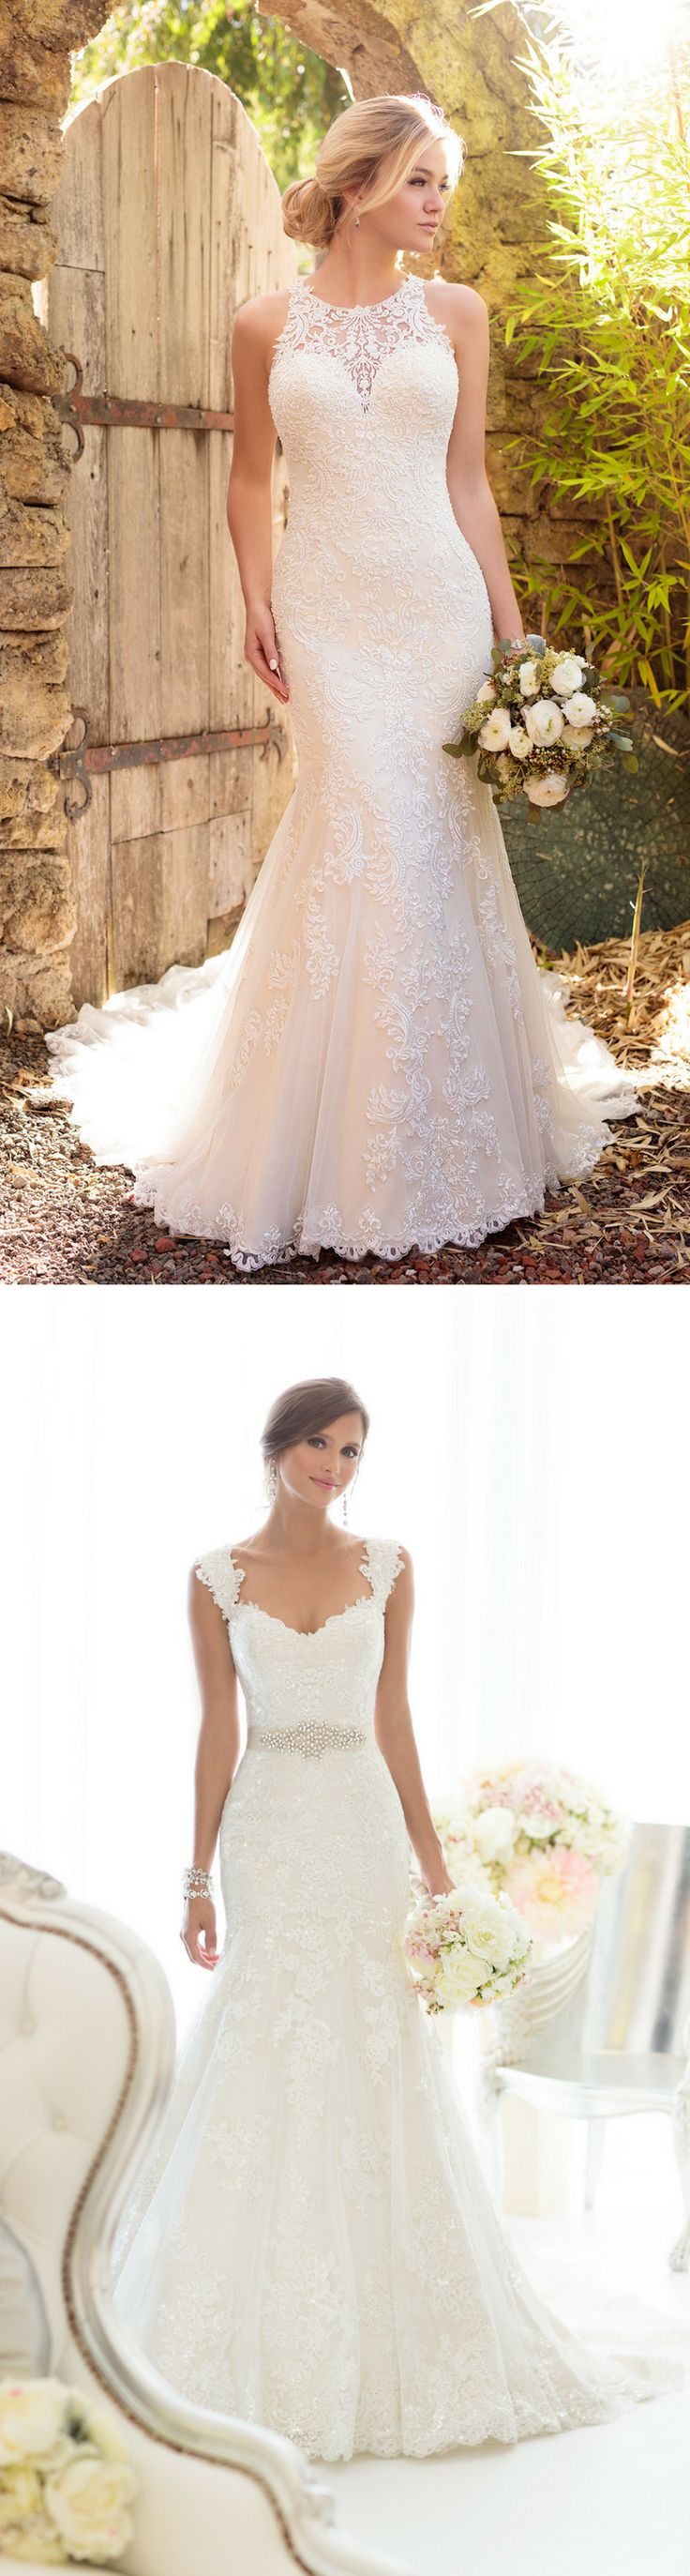 Year after year, lace wedding dresses remain a staple and today's gowns are no exception. Lace is a stunning fabric that feels classic yet modern in design.